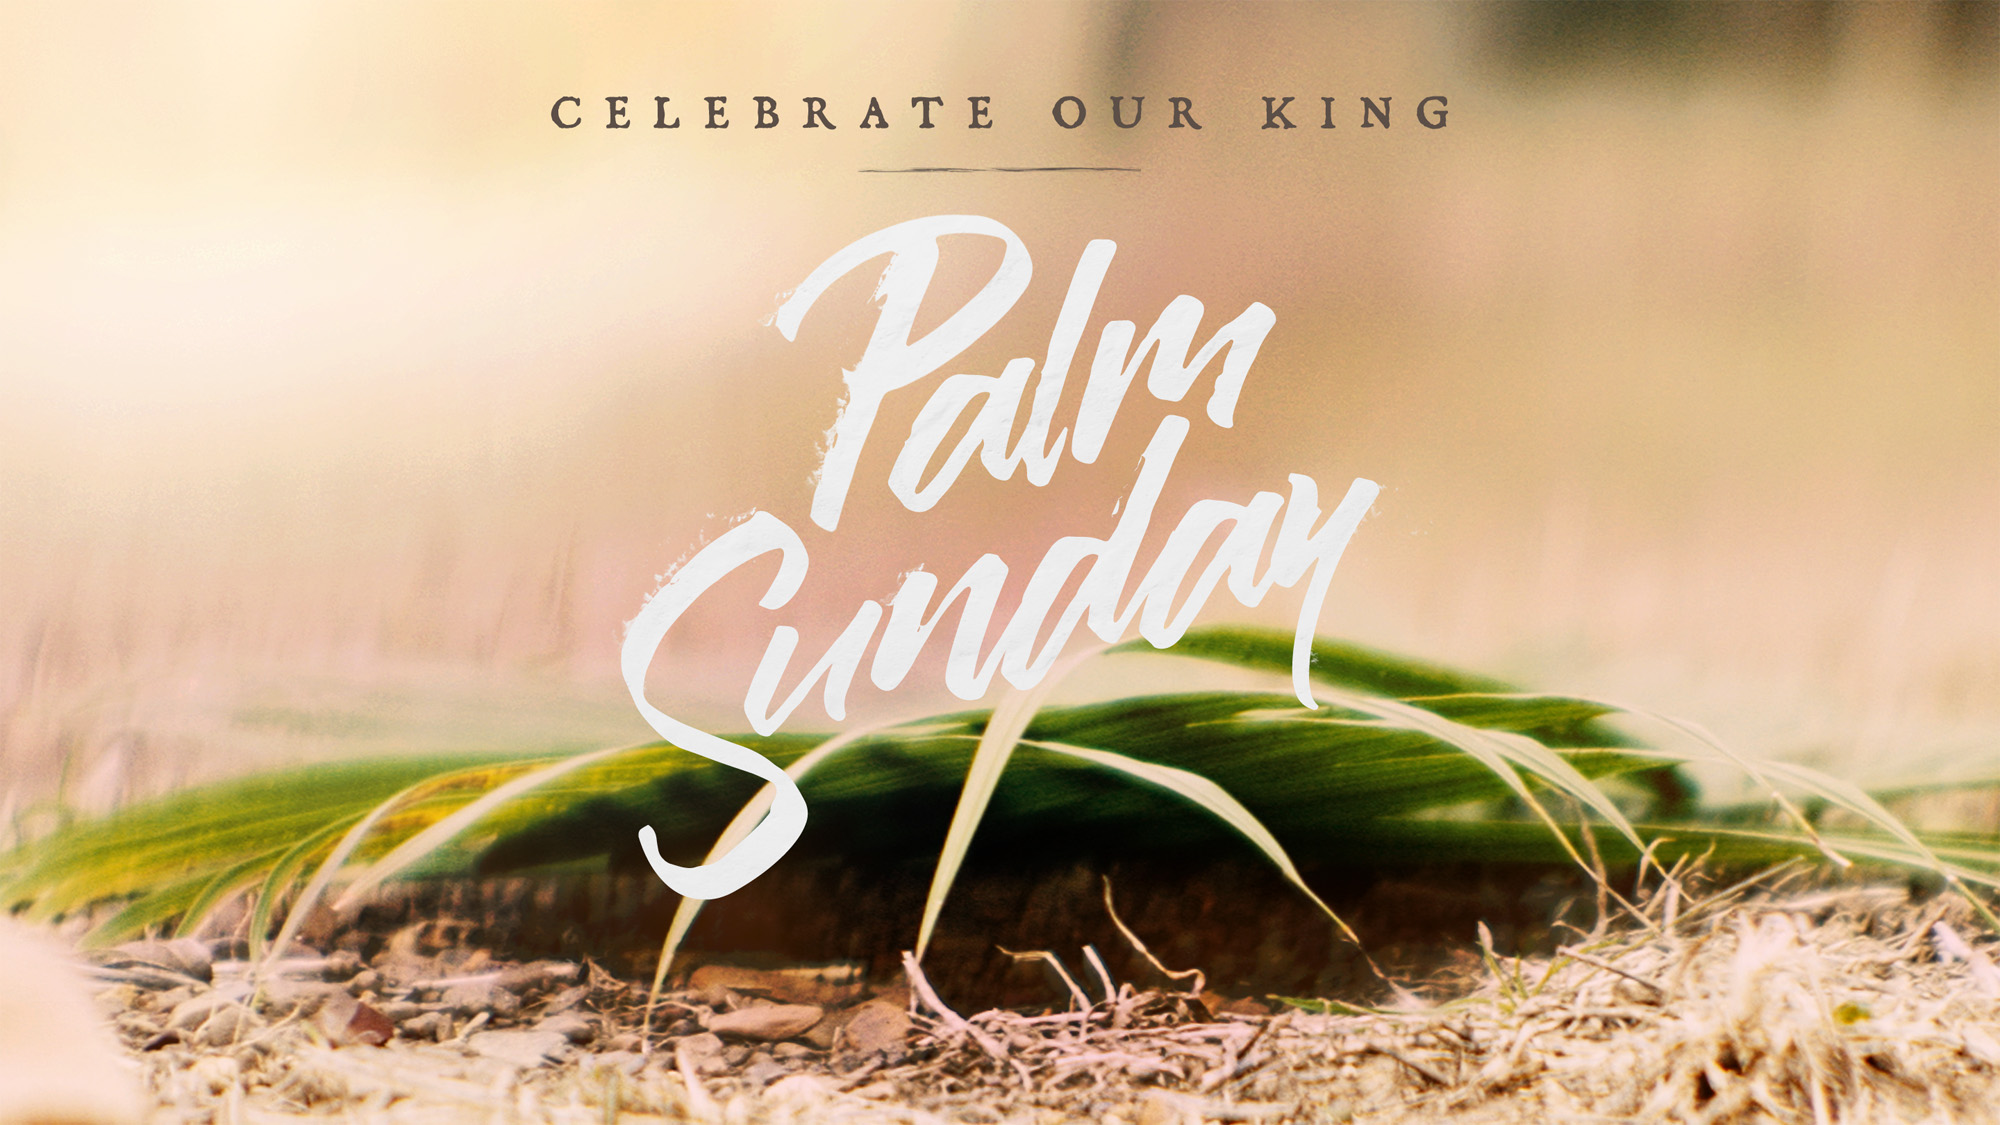 easter_moments_palm_sunday-title-1-Wide 16x9.jpg